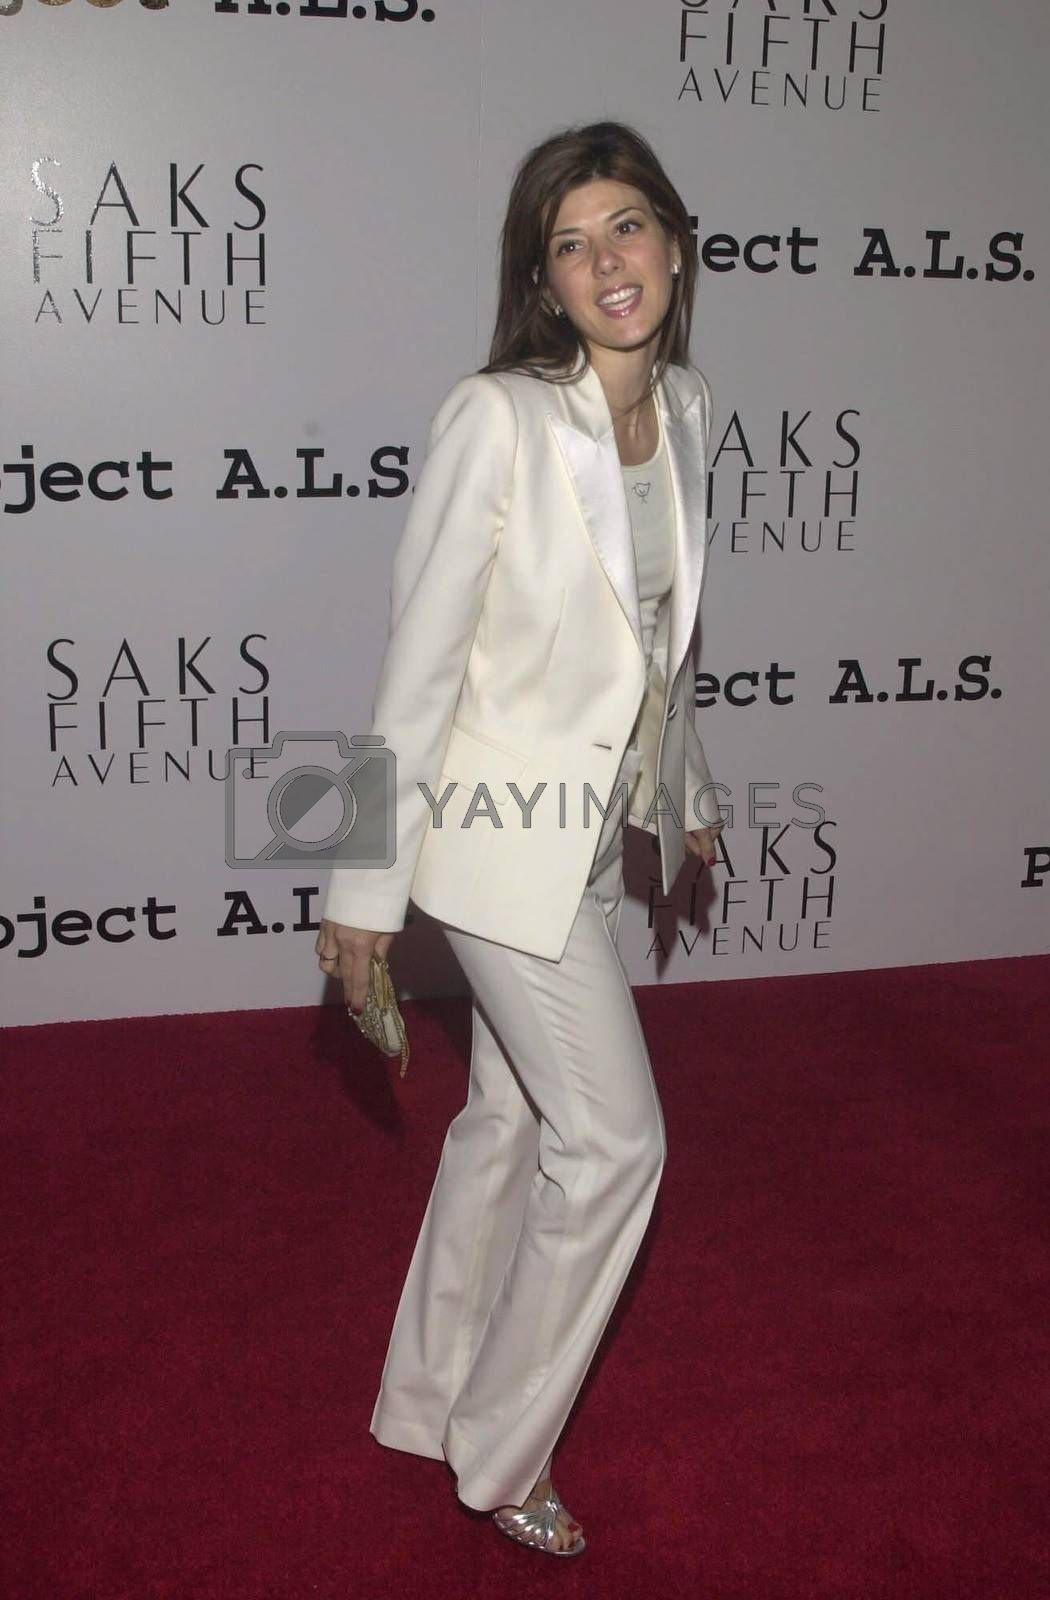 Marissa Tomei at the 2nd Annual ALS Benefit at the Hollywood Palladium, 04-10-00